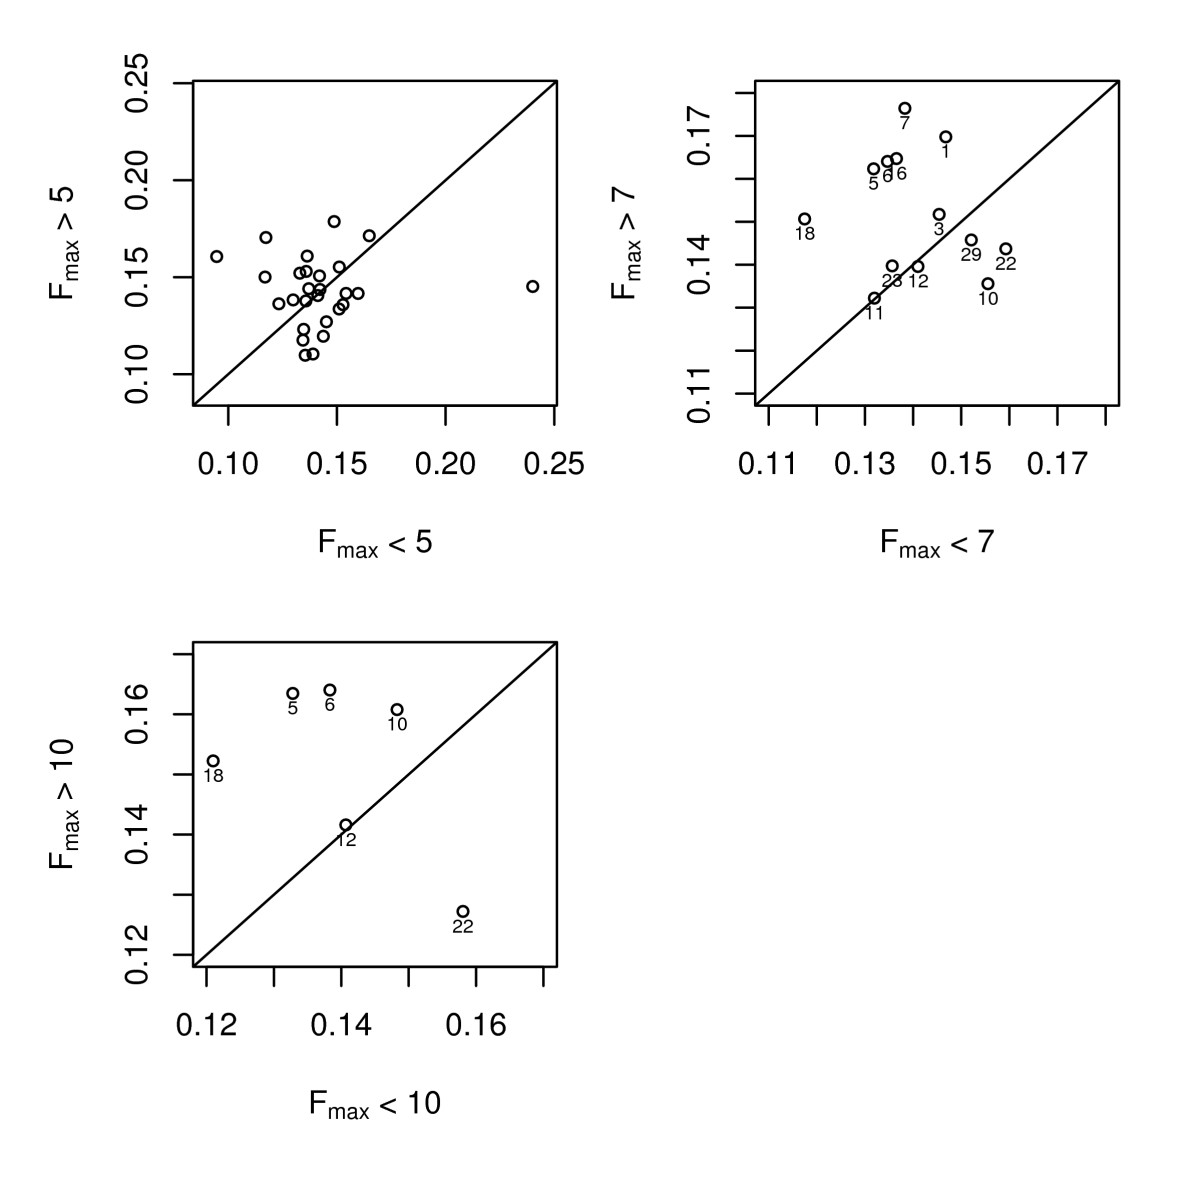 https://static-content.springer.com/image/art%3A10.1186%2F1471-2164-12-65/MediaObjects/12864_2010_Article_3919_Fig2_HTML.jpg